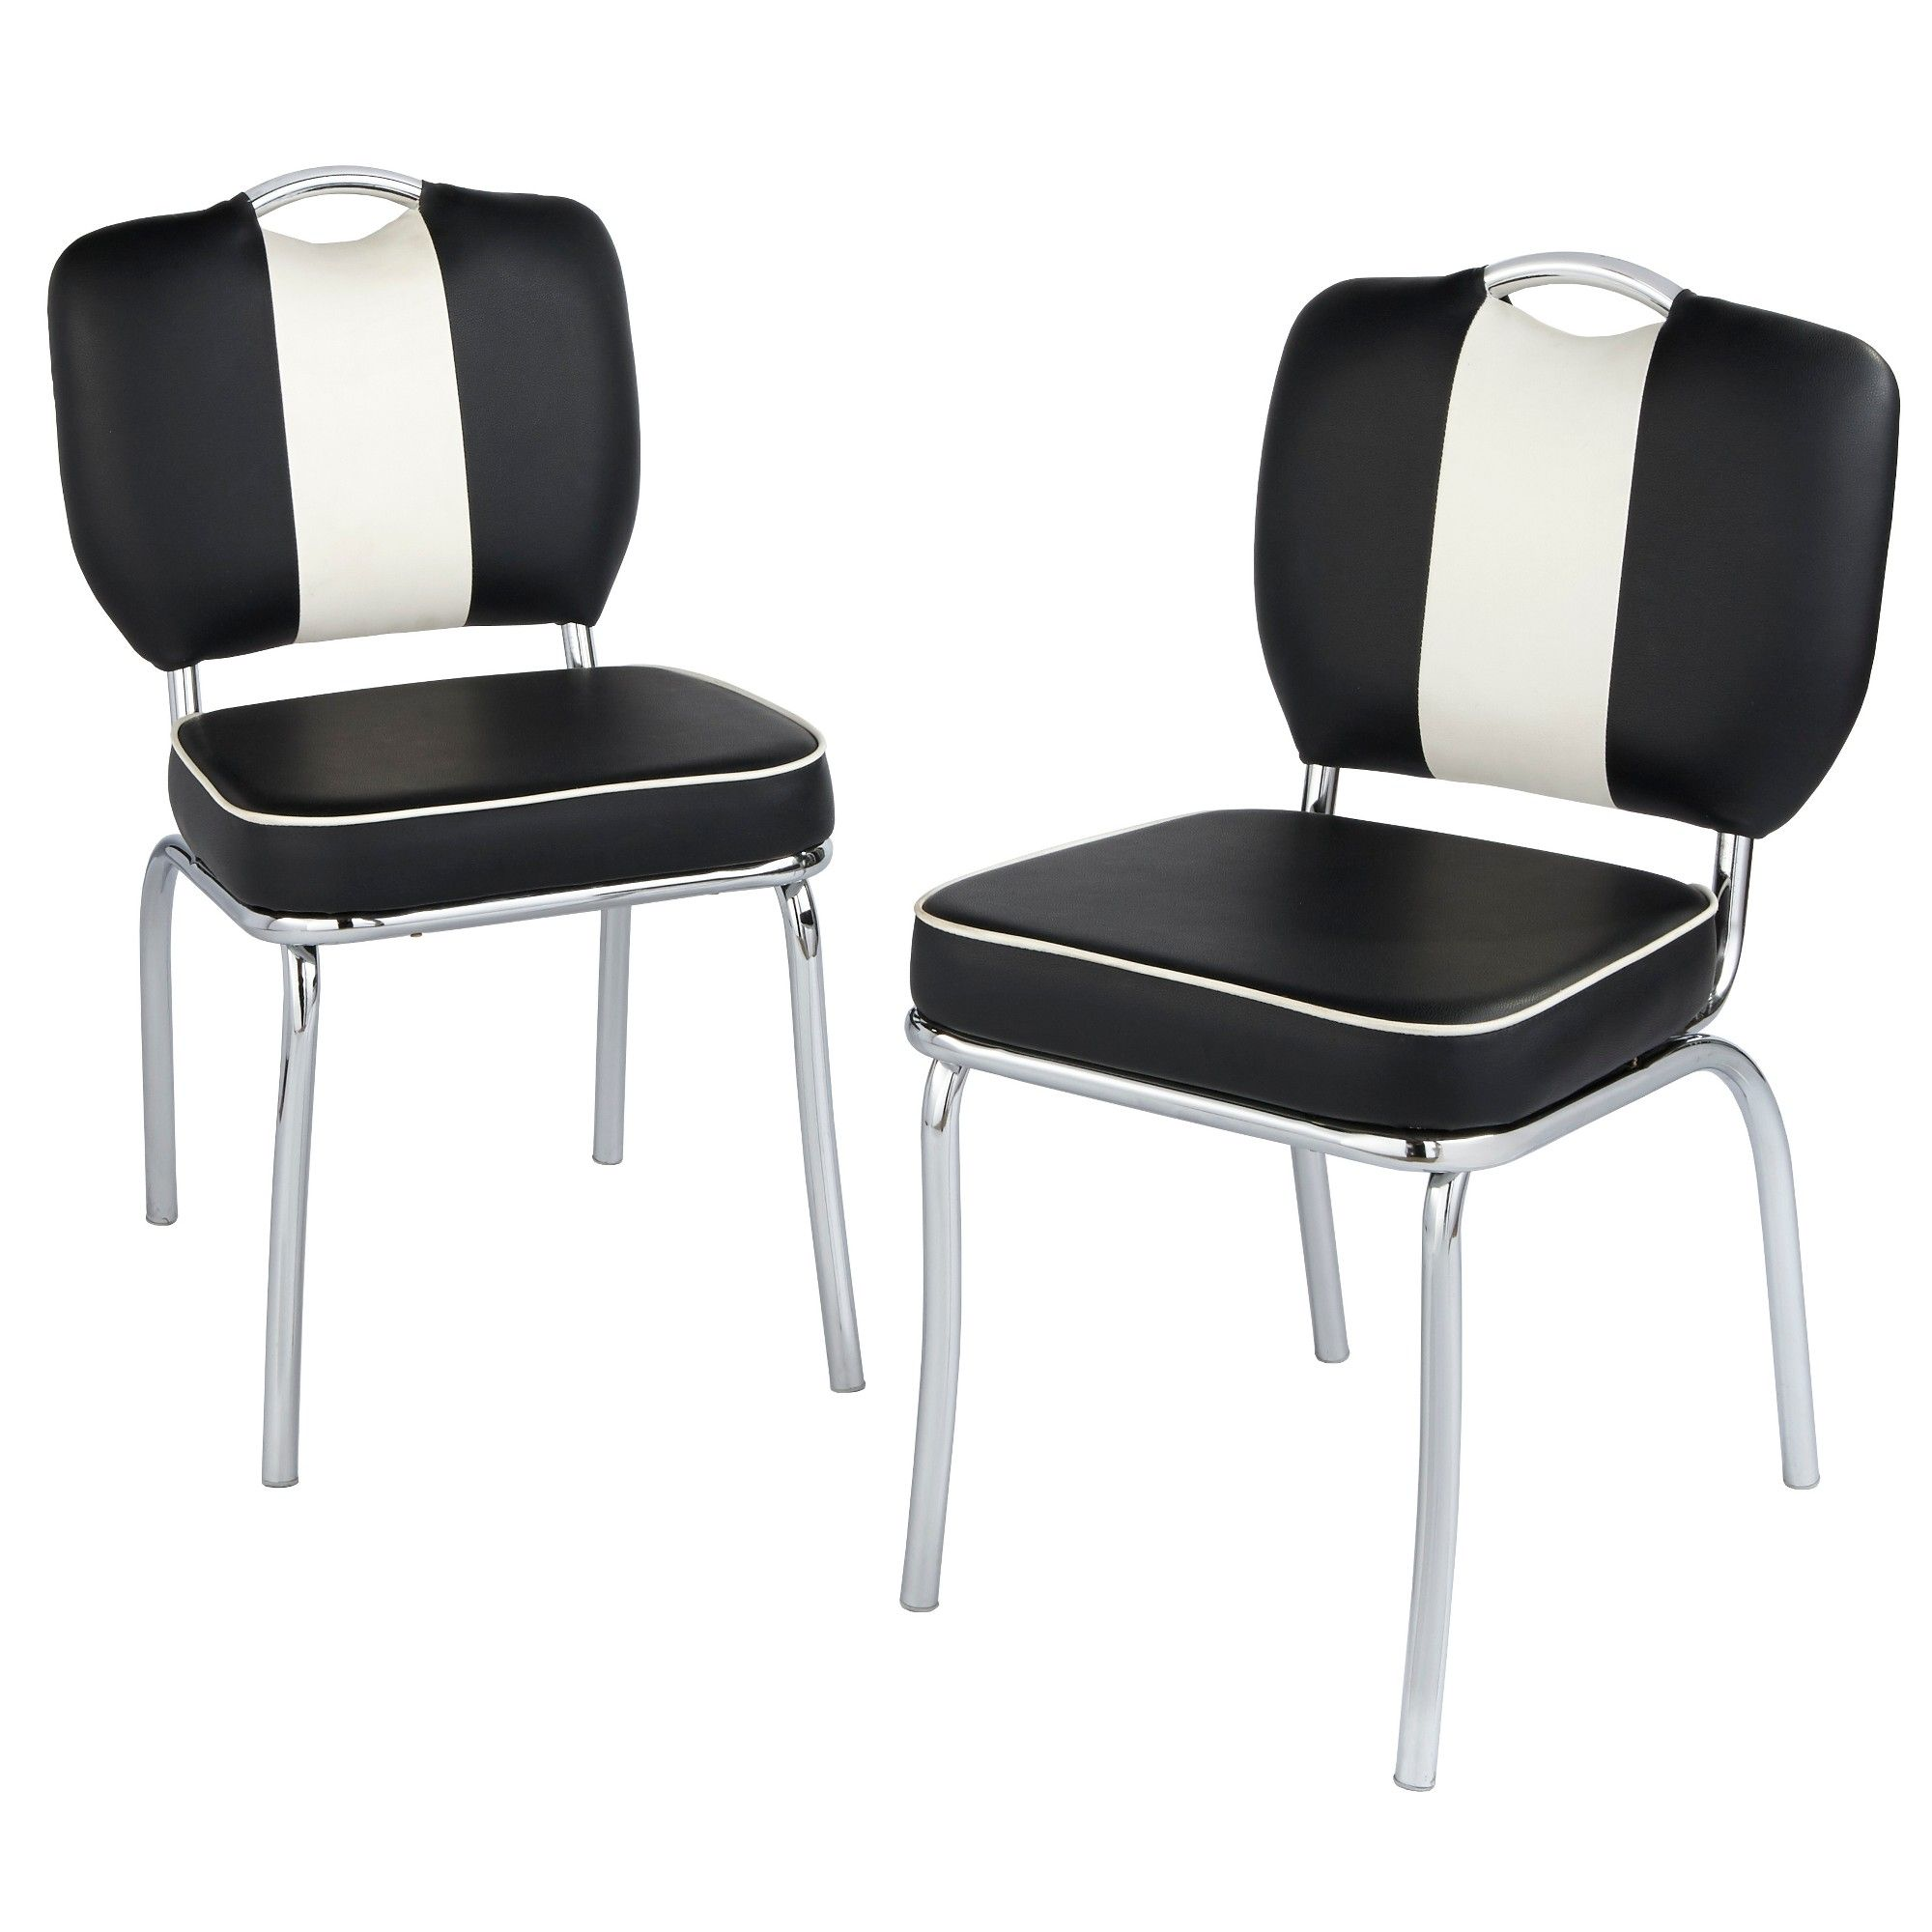 Amazing Set Of 2 Raleigh Retro Dining Chairs White Black Pabps2019 Chair Design Images Pabps2019Com